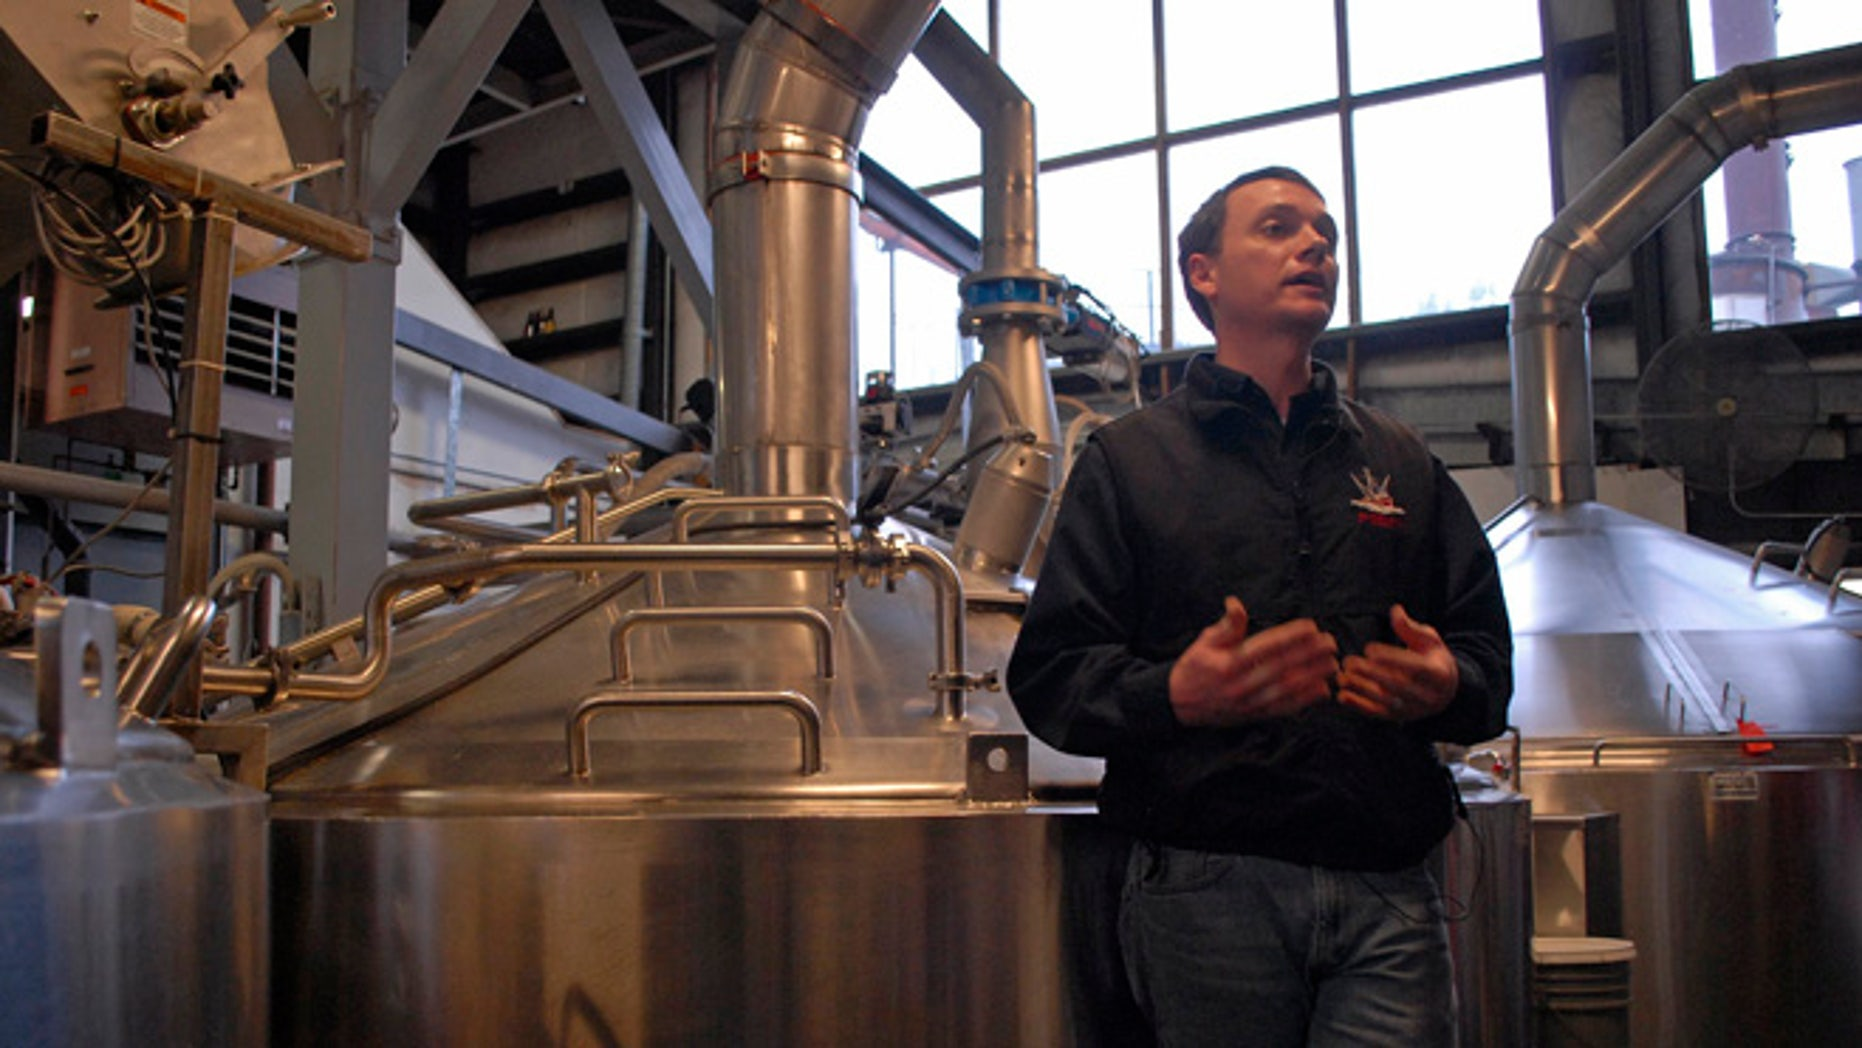 Brandon Smith, the Alaskan Brewing Co.'s brewing operations and engineering manager, speaks to reporters about the company's new boiler system. The brewery has installed a unique boiler system that burns the company's spent grain the accumulated waste from the brewing process into steam which powers the majority of the plant's operations.